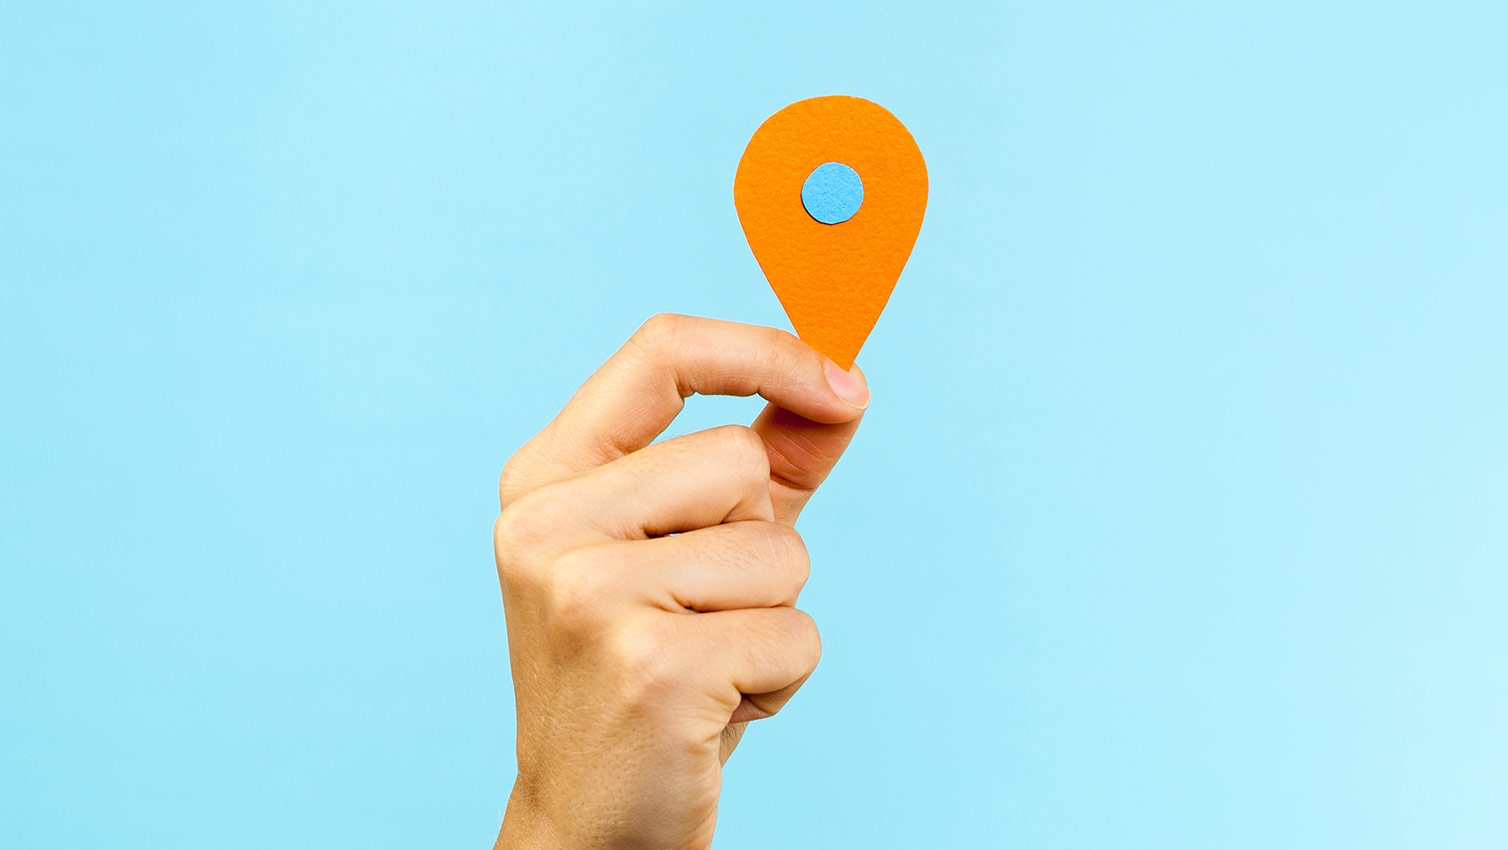 how to find geolocation from pictures